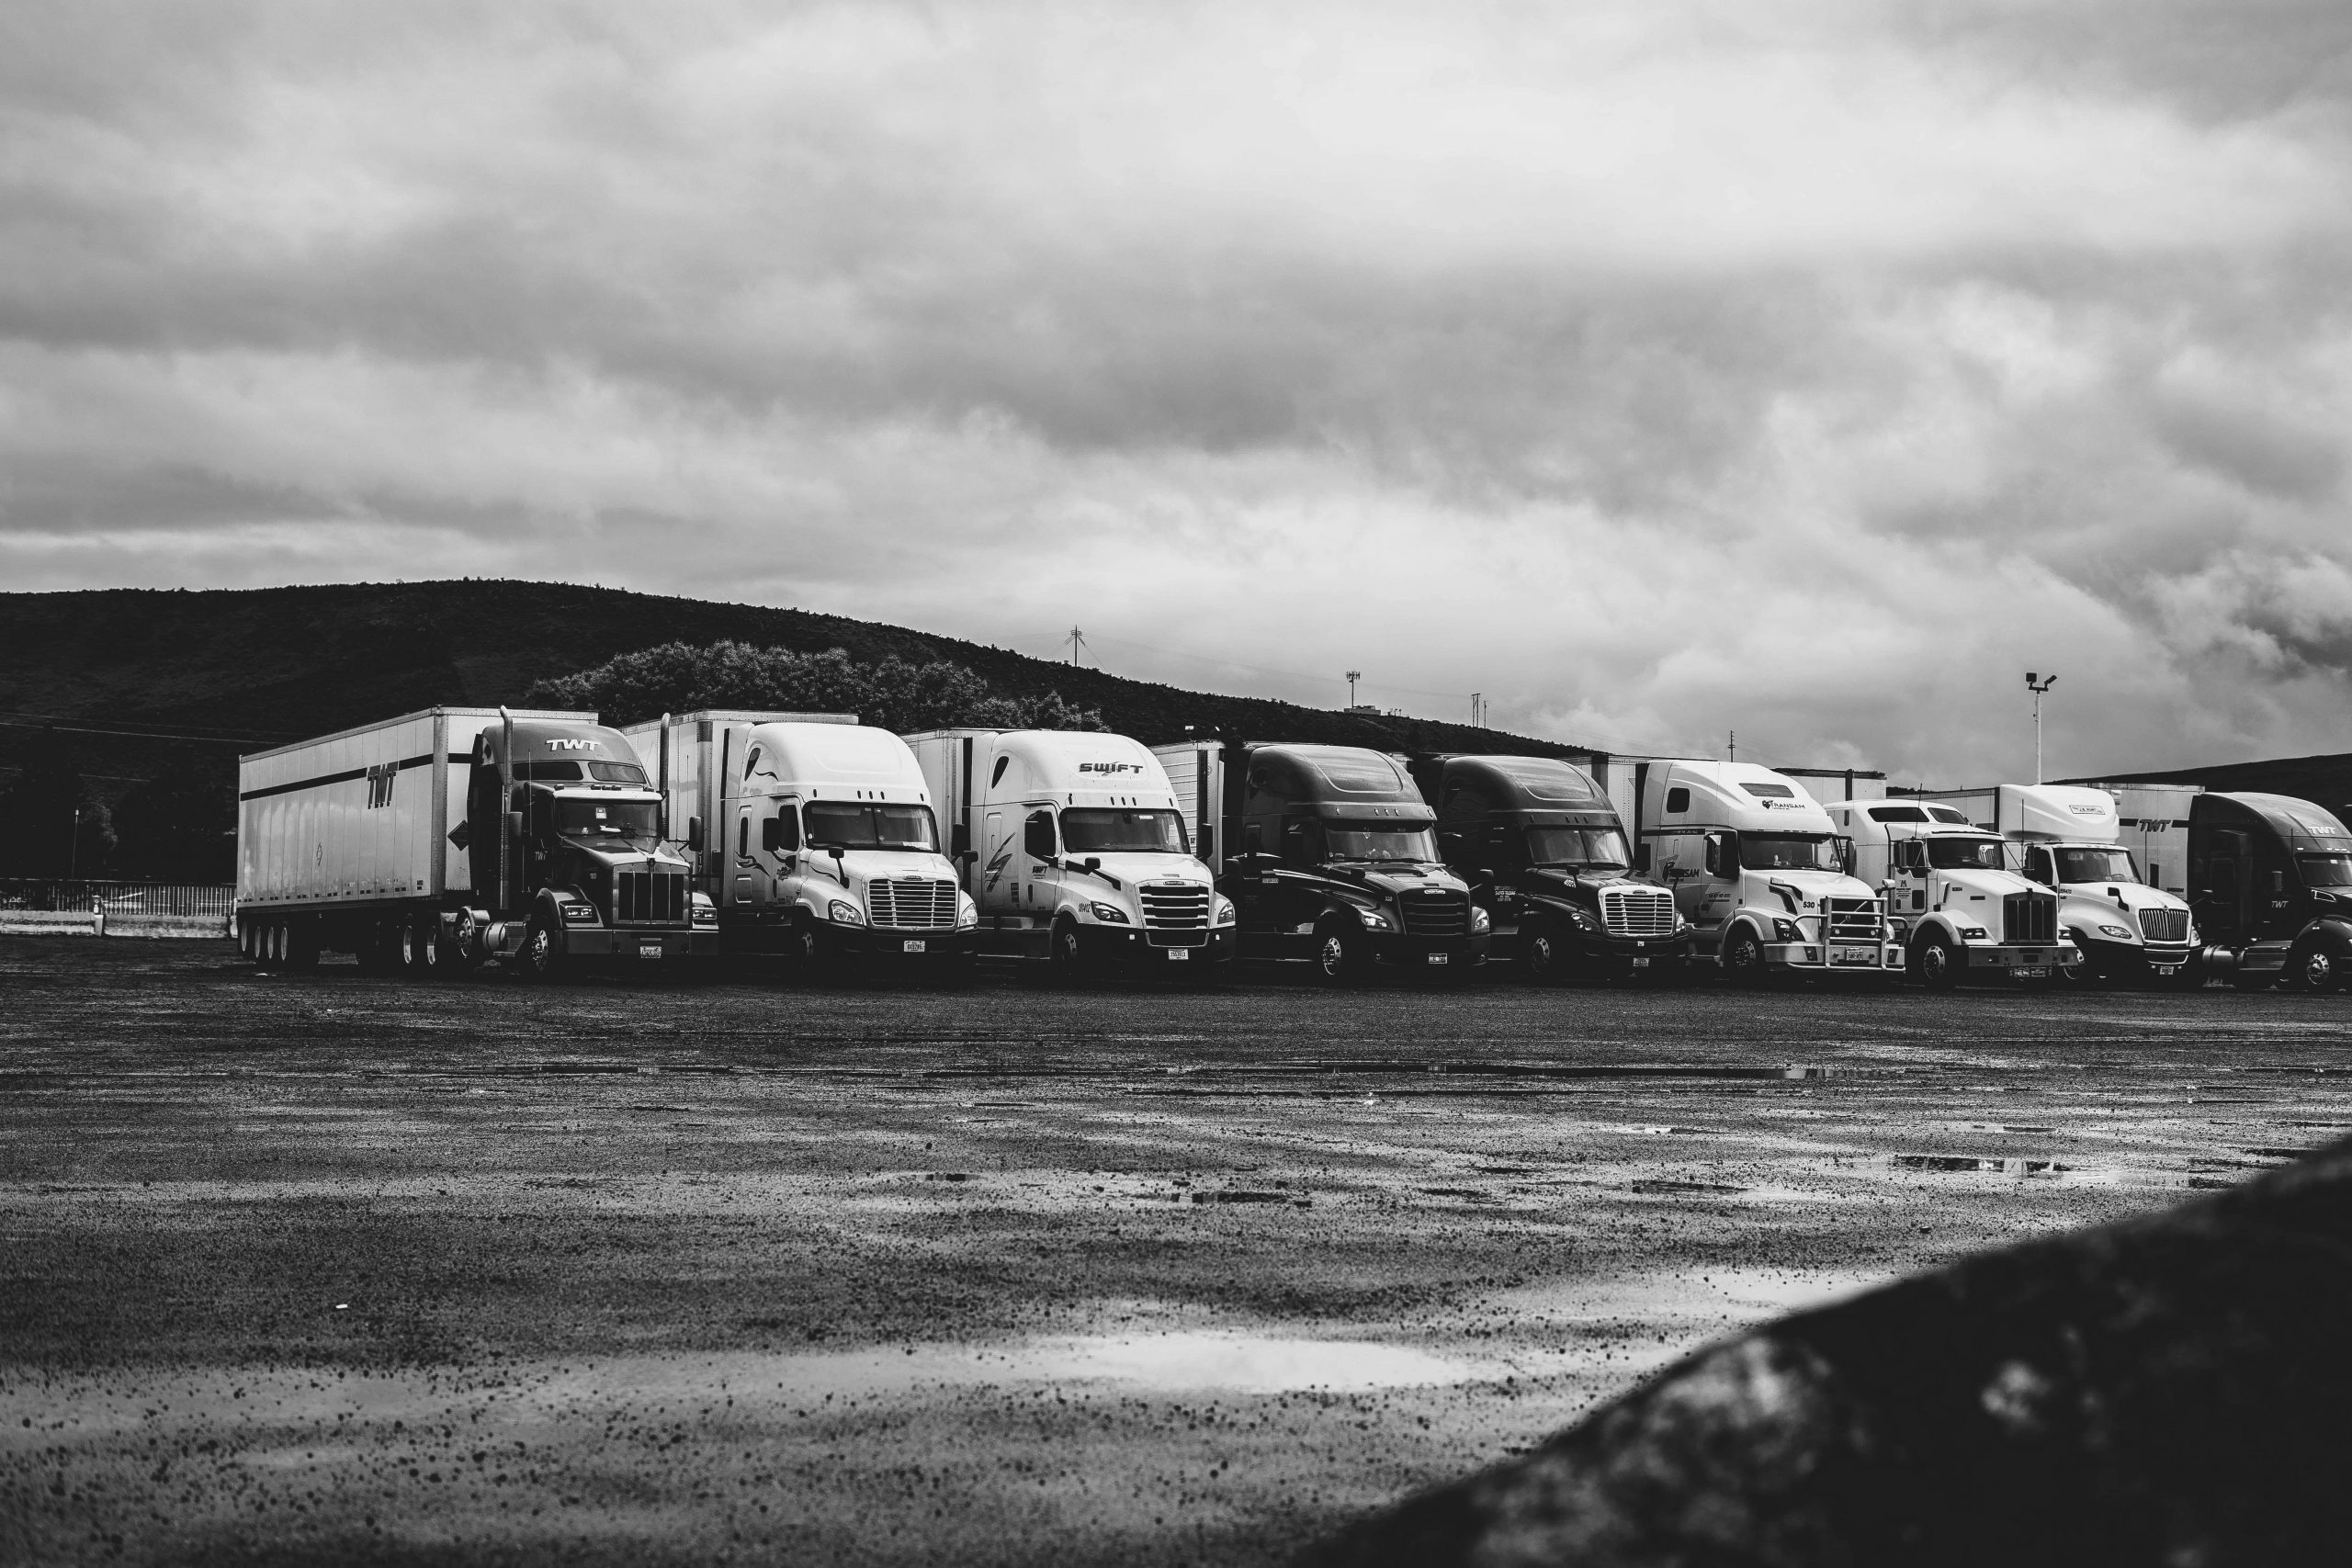 parked-trucks-under-clouds-2348359-min